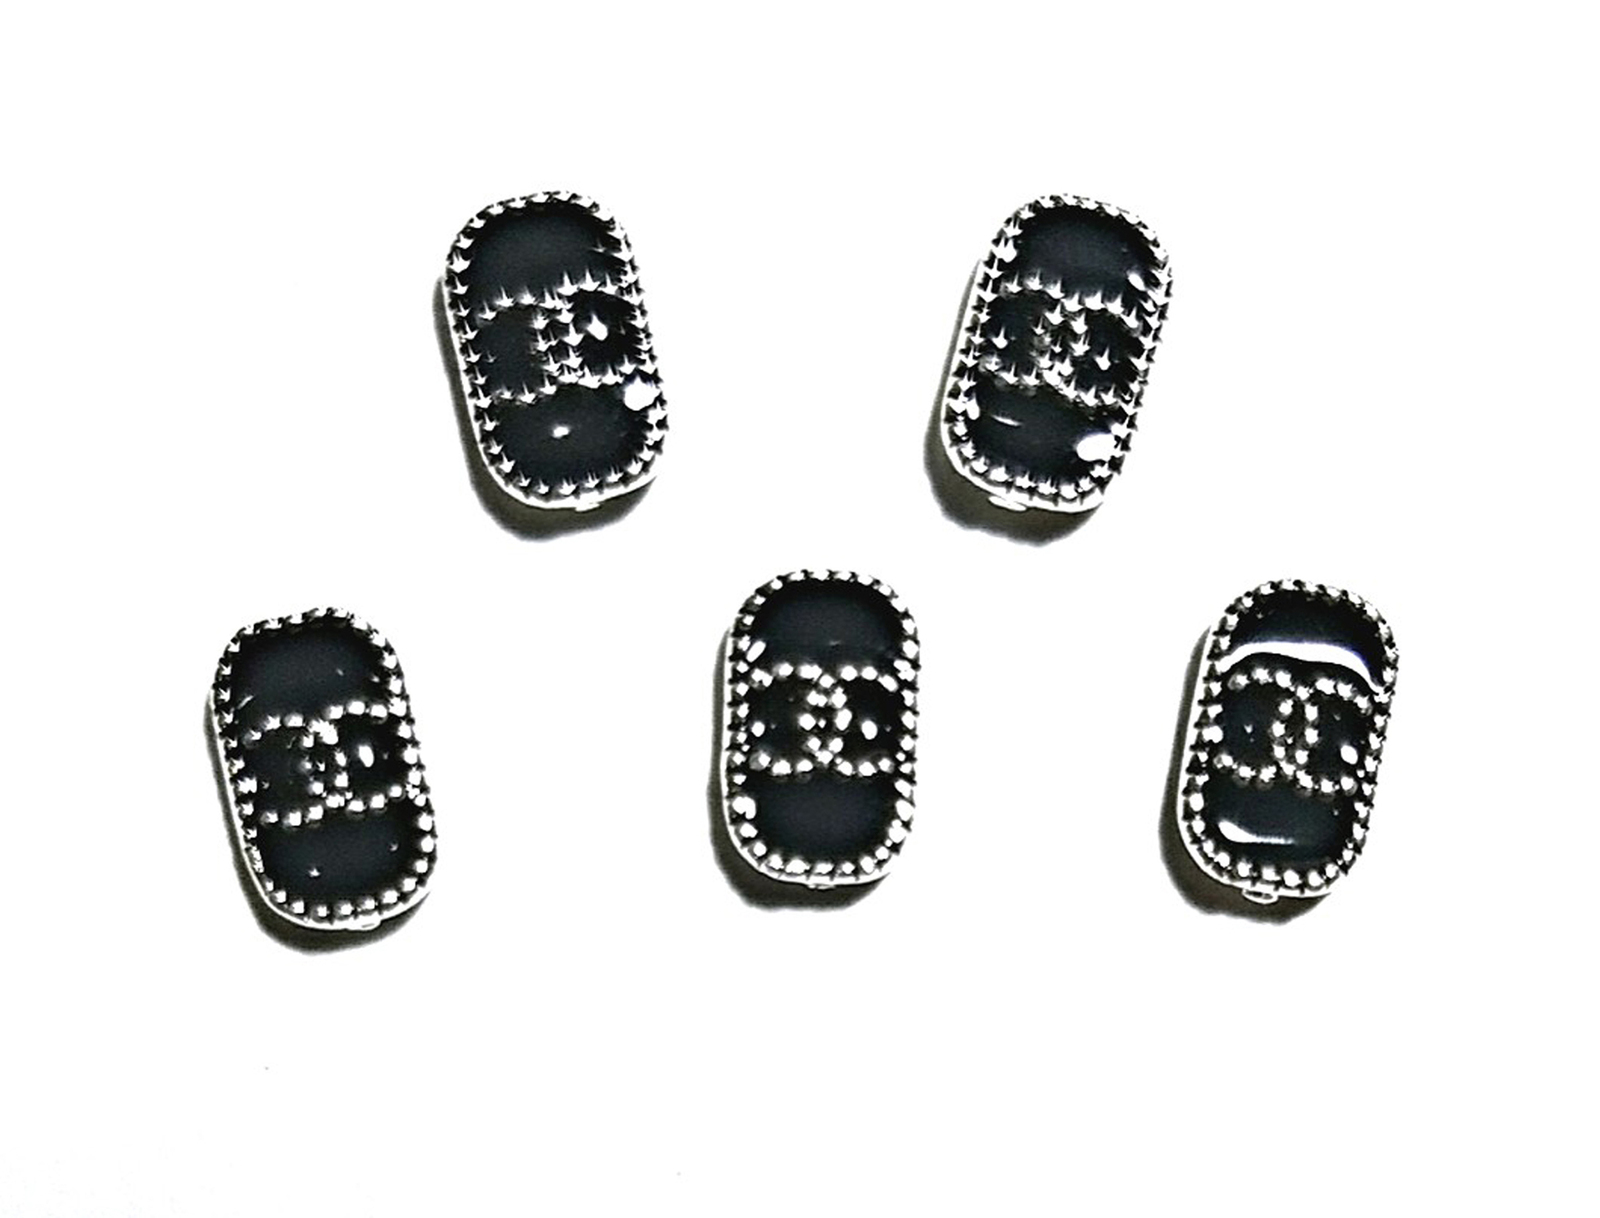 Primary image for 5pc Nail Art Charms 3D Nail Rhinestones Decoration Jewelry DIY Bling C11